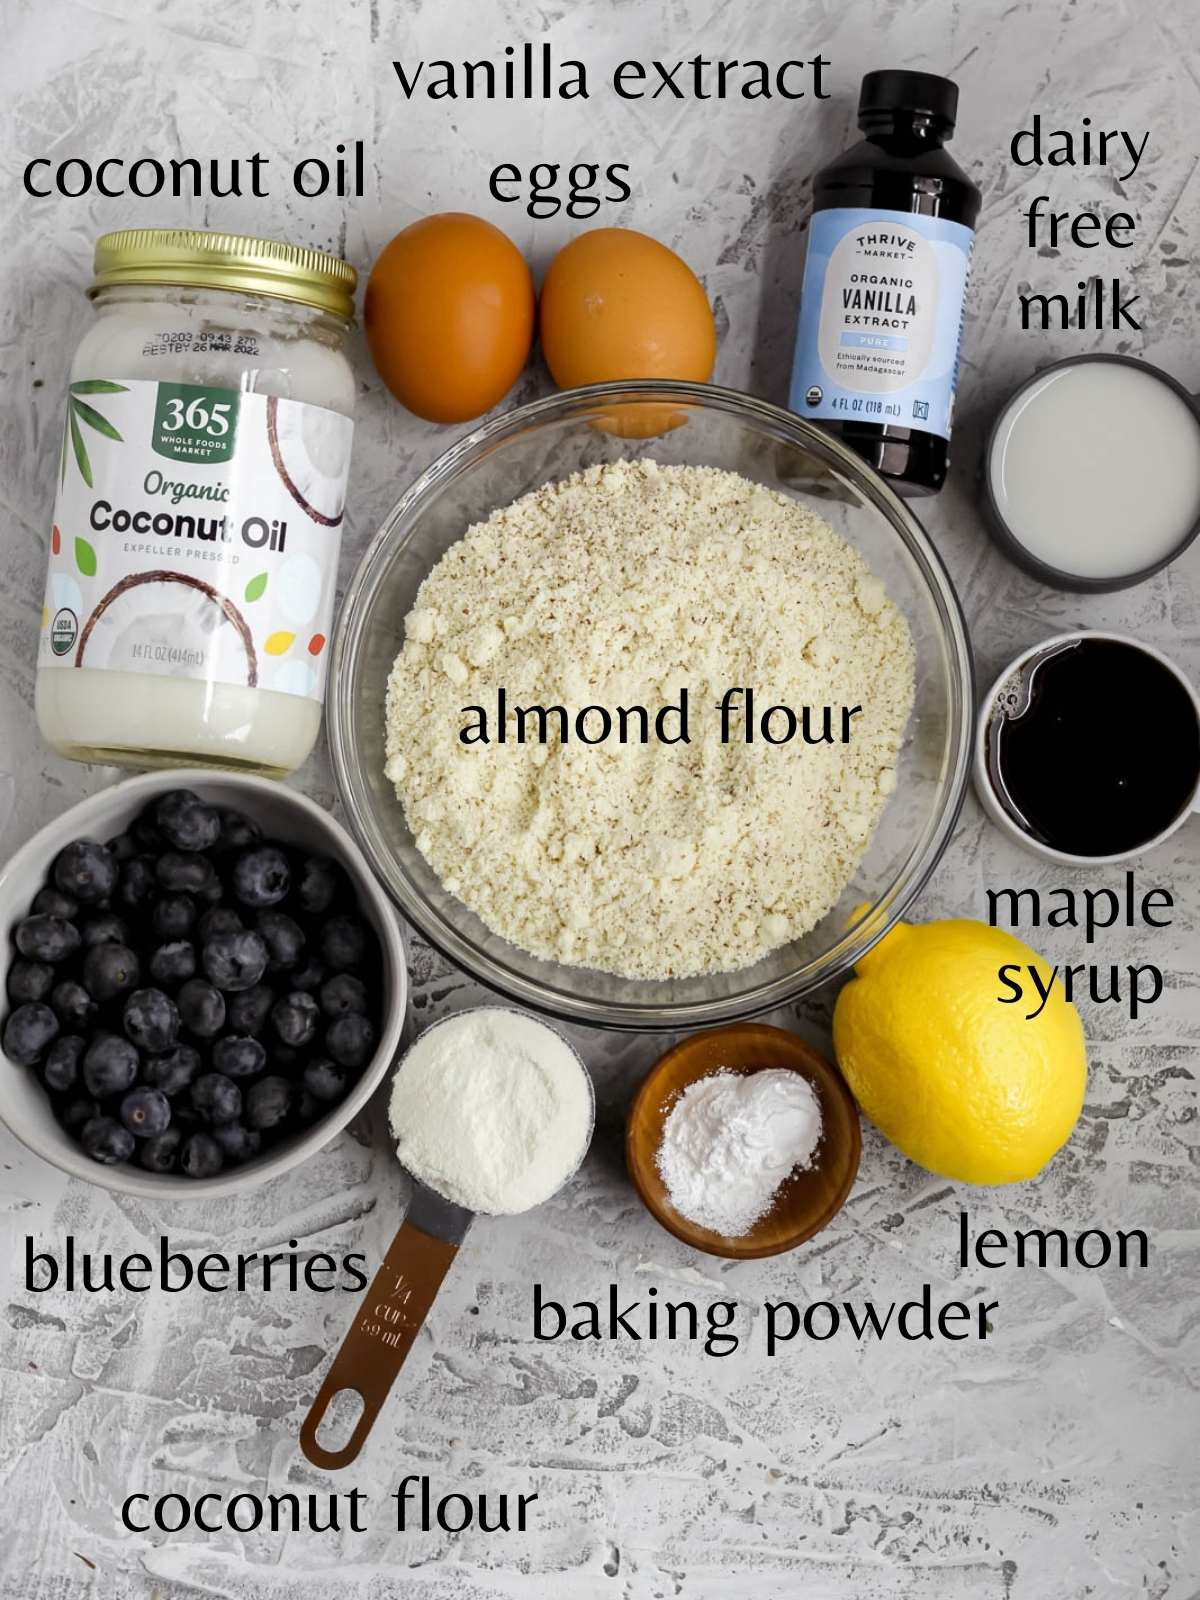 A bowl with almond flour, a small bowl with blueberries, a jar of coconut oil. 2 eggs, a bottle of vanilla extract, a small cut of dairy free milk, a small cup of maple, syrup, a lemon, a small cup with coconut flour, and a small bowl with baking powder